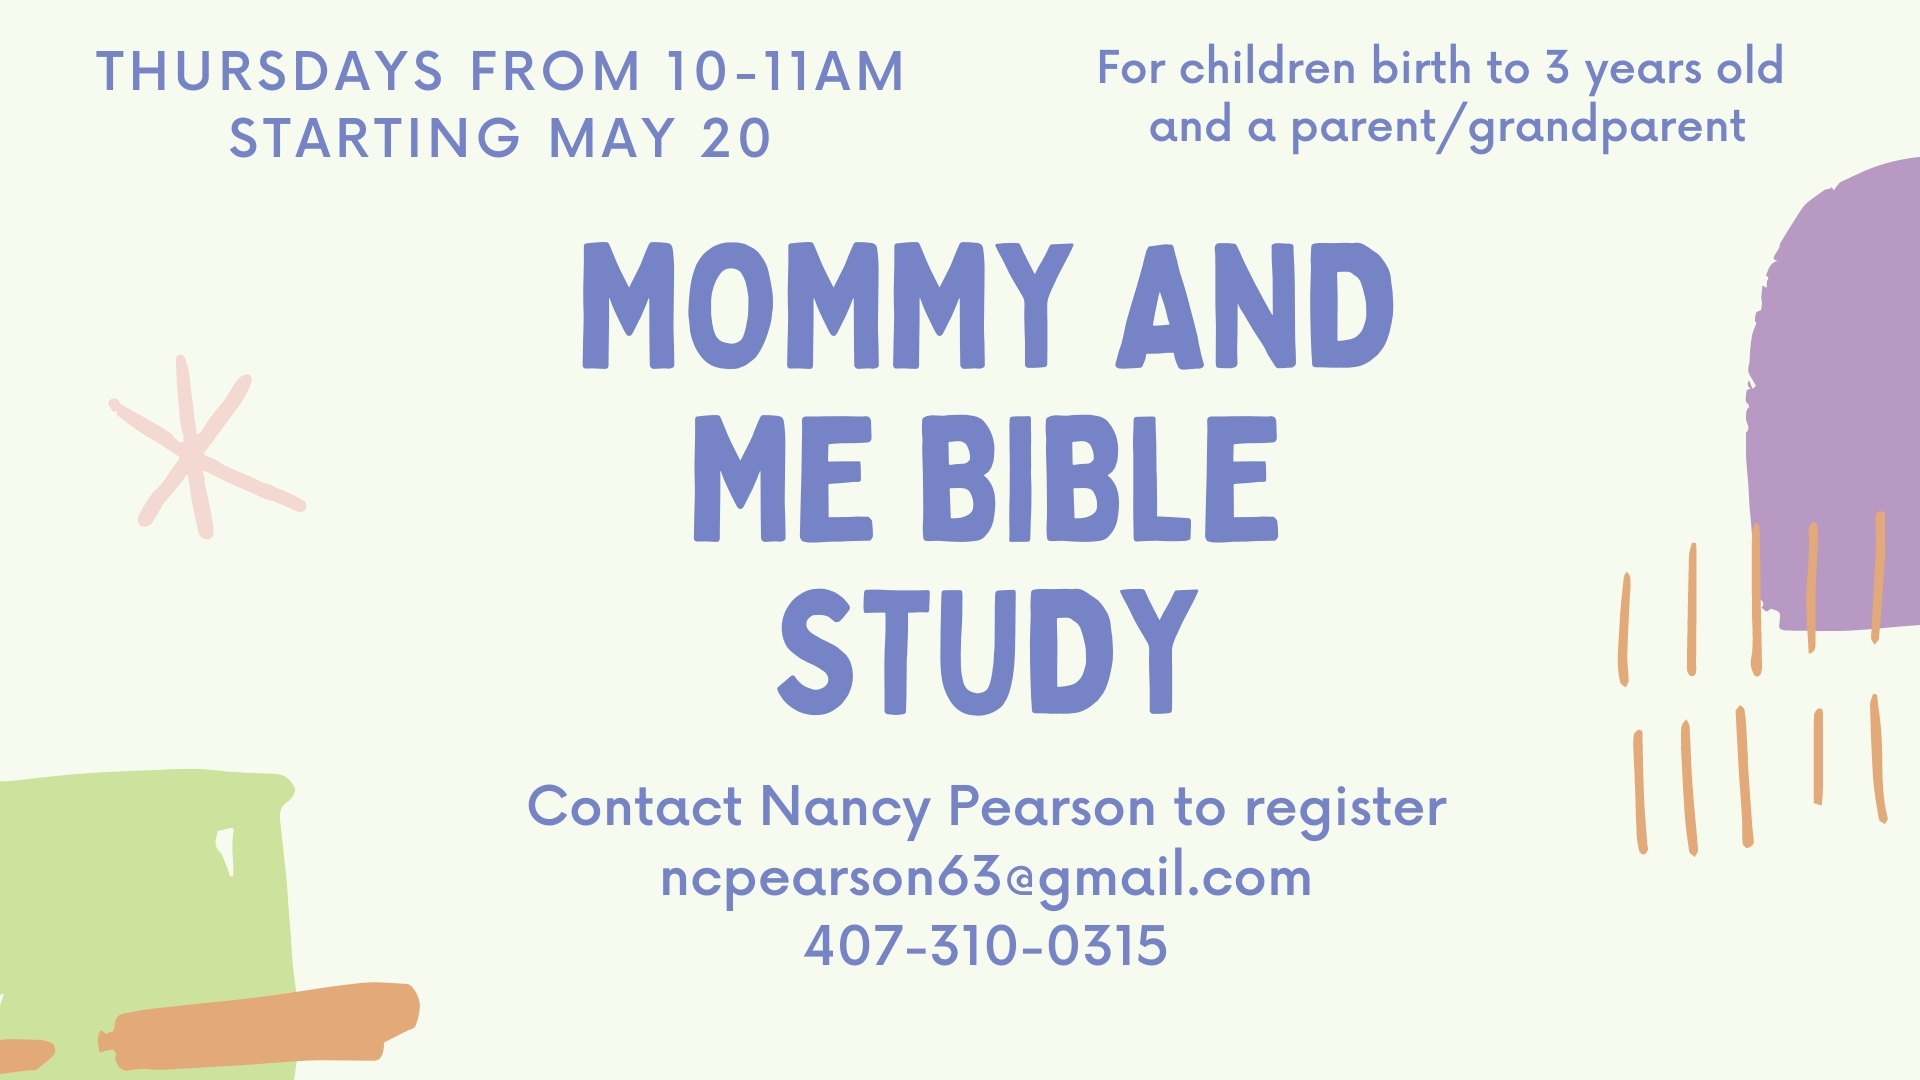 Mommy and Me Bible Study image